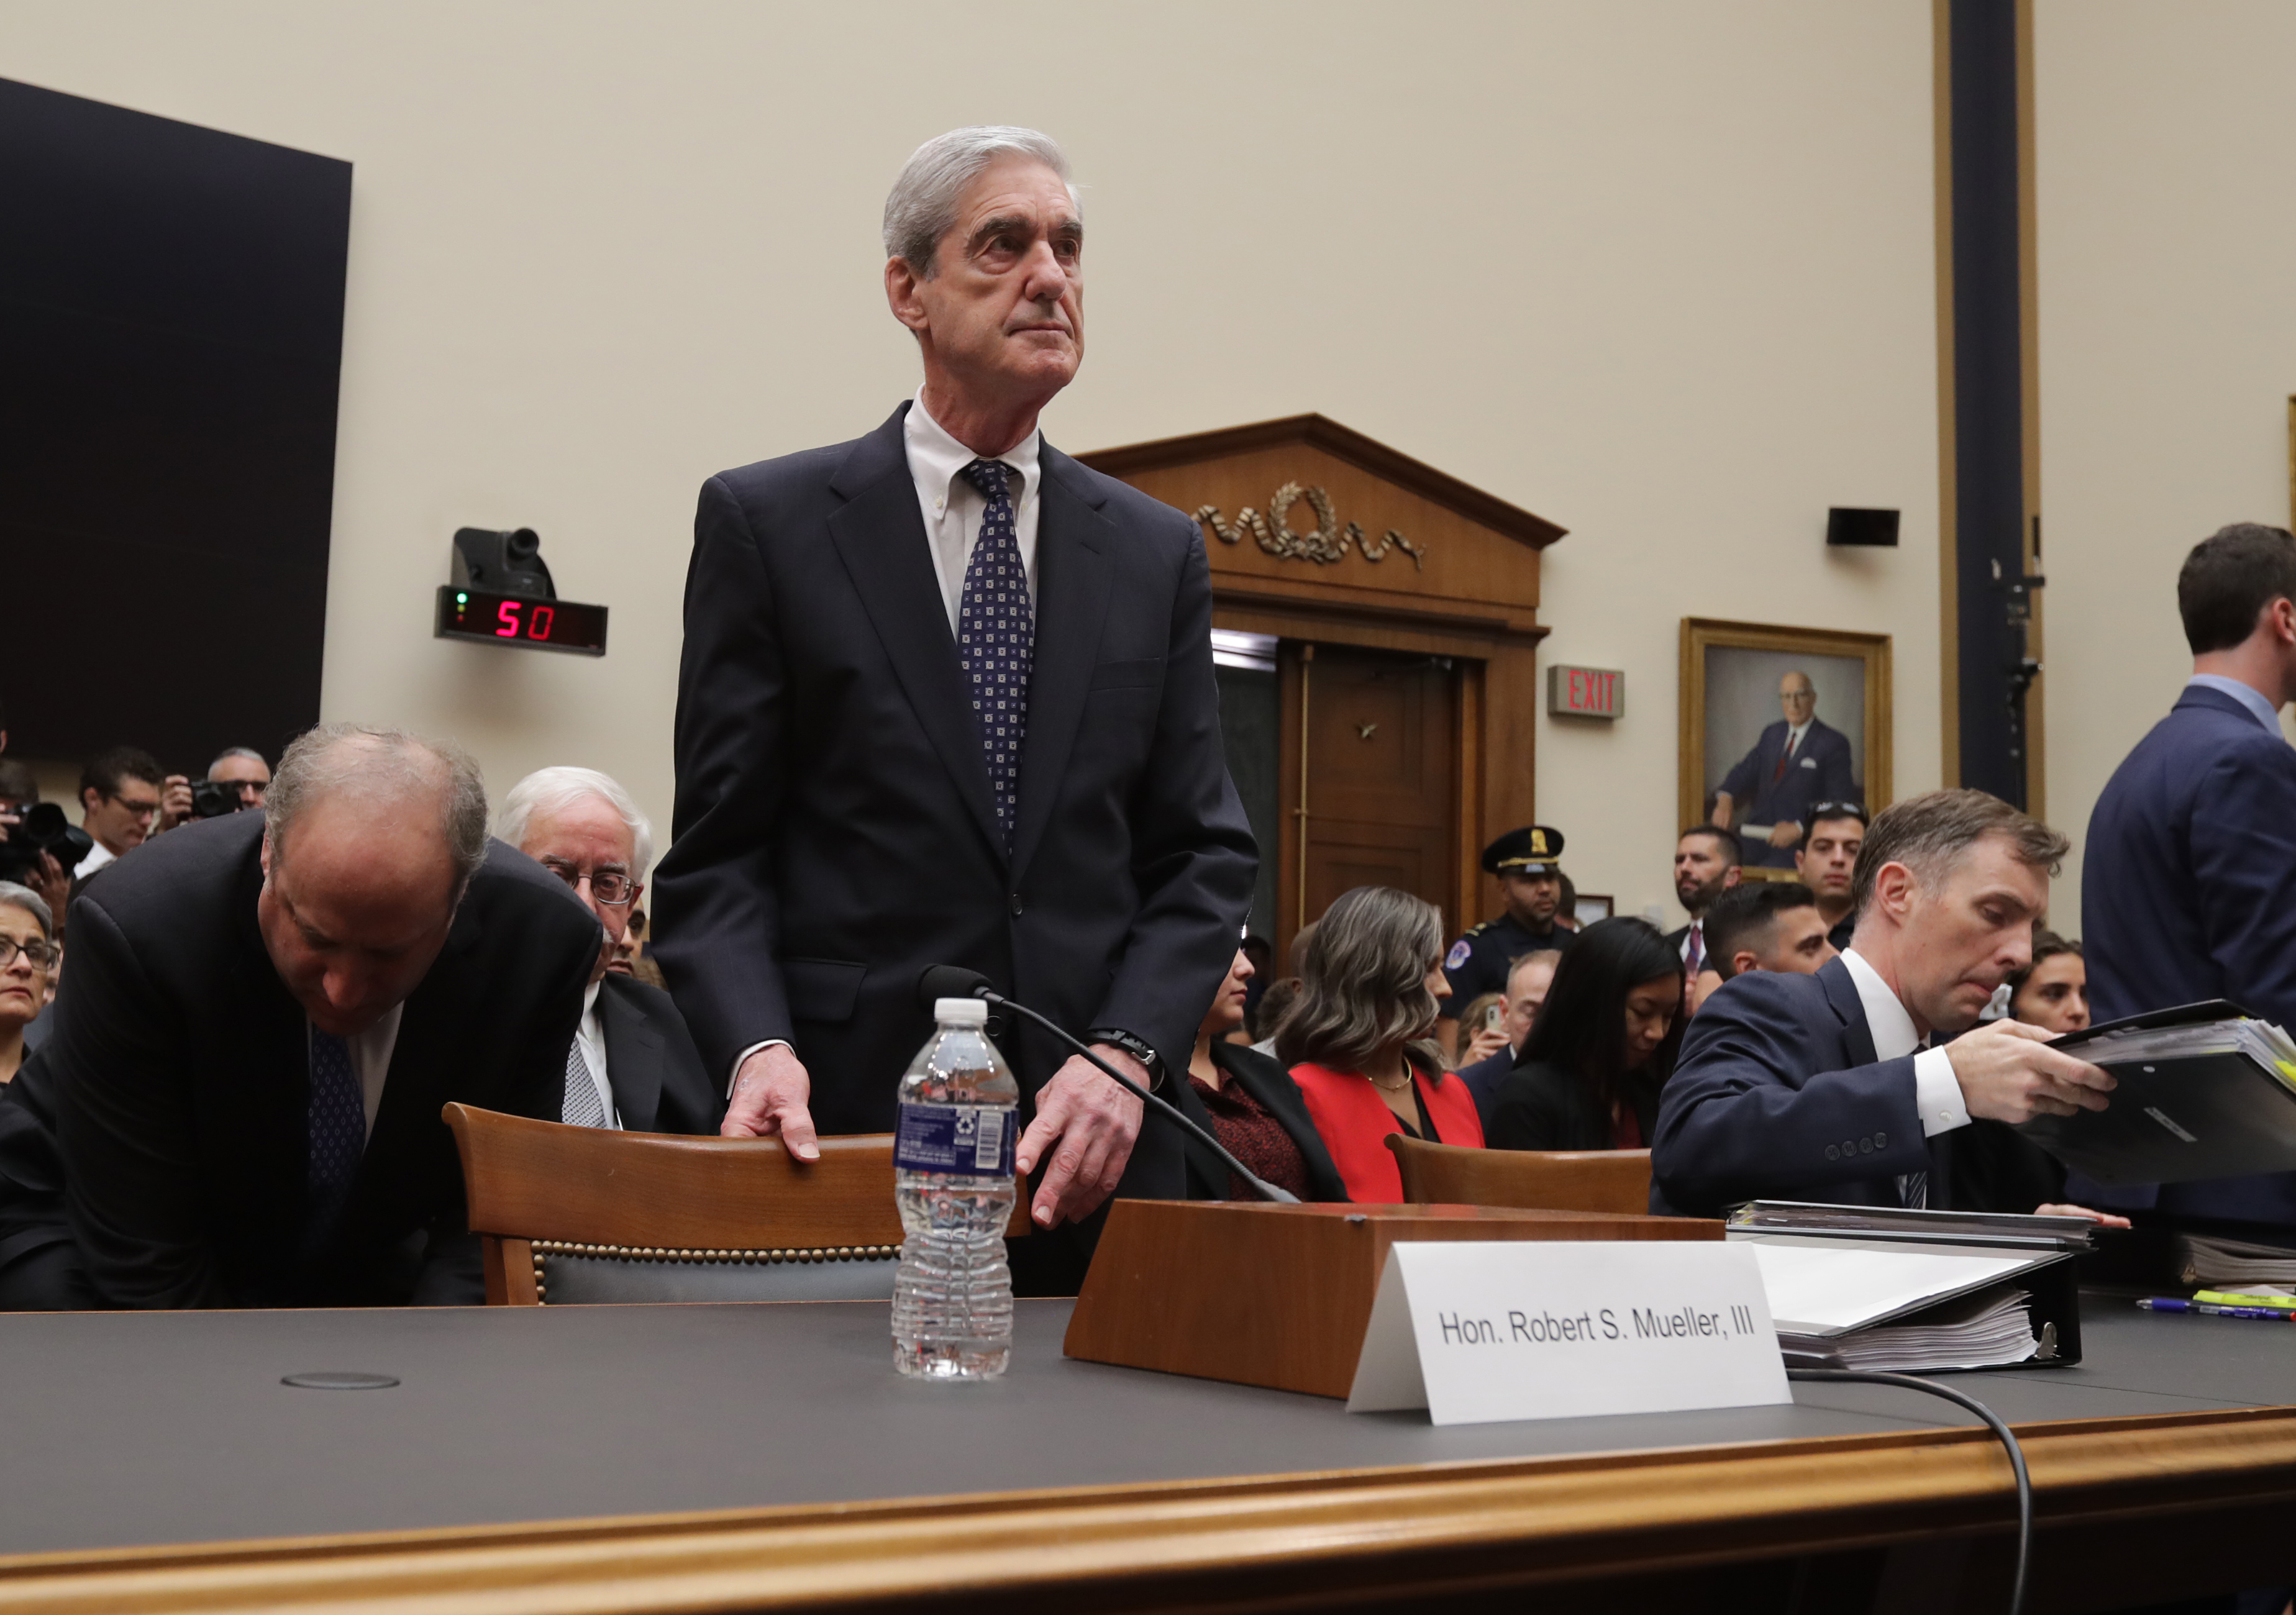 Former Special Counsel Robert Mueller arrives before testifying to the House Judiciary Committee about his report on Russian interference in the 2016 presidential election in the Rayburn House Office Building July 24, 2019 in Washington, DC. (Photo by Chip Somodevilla/Getty Images)